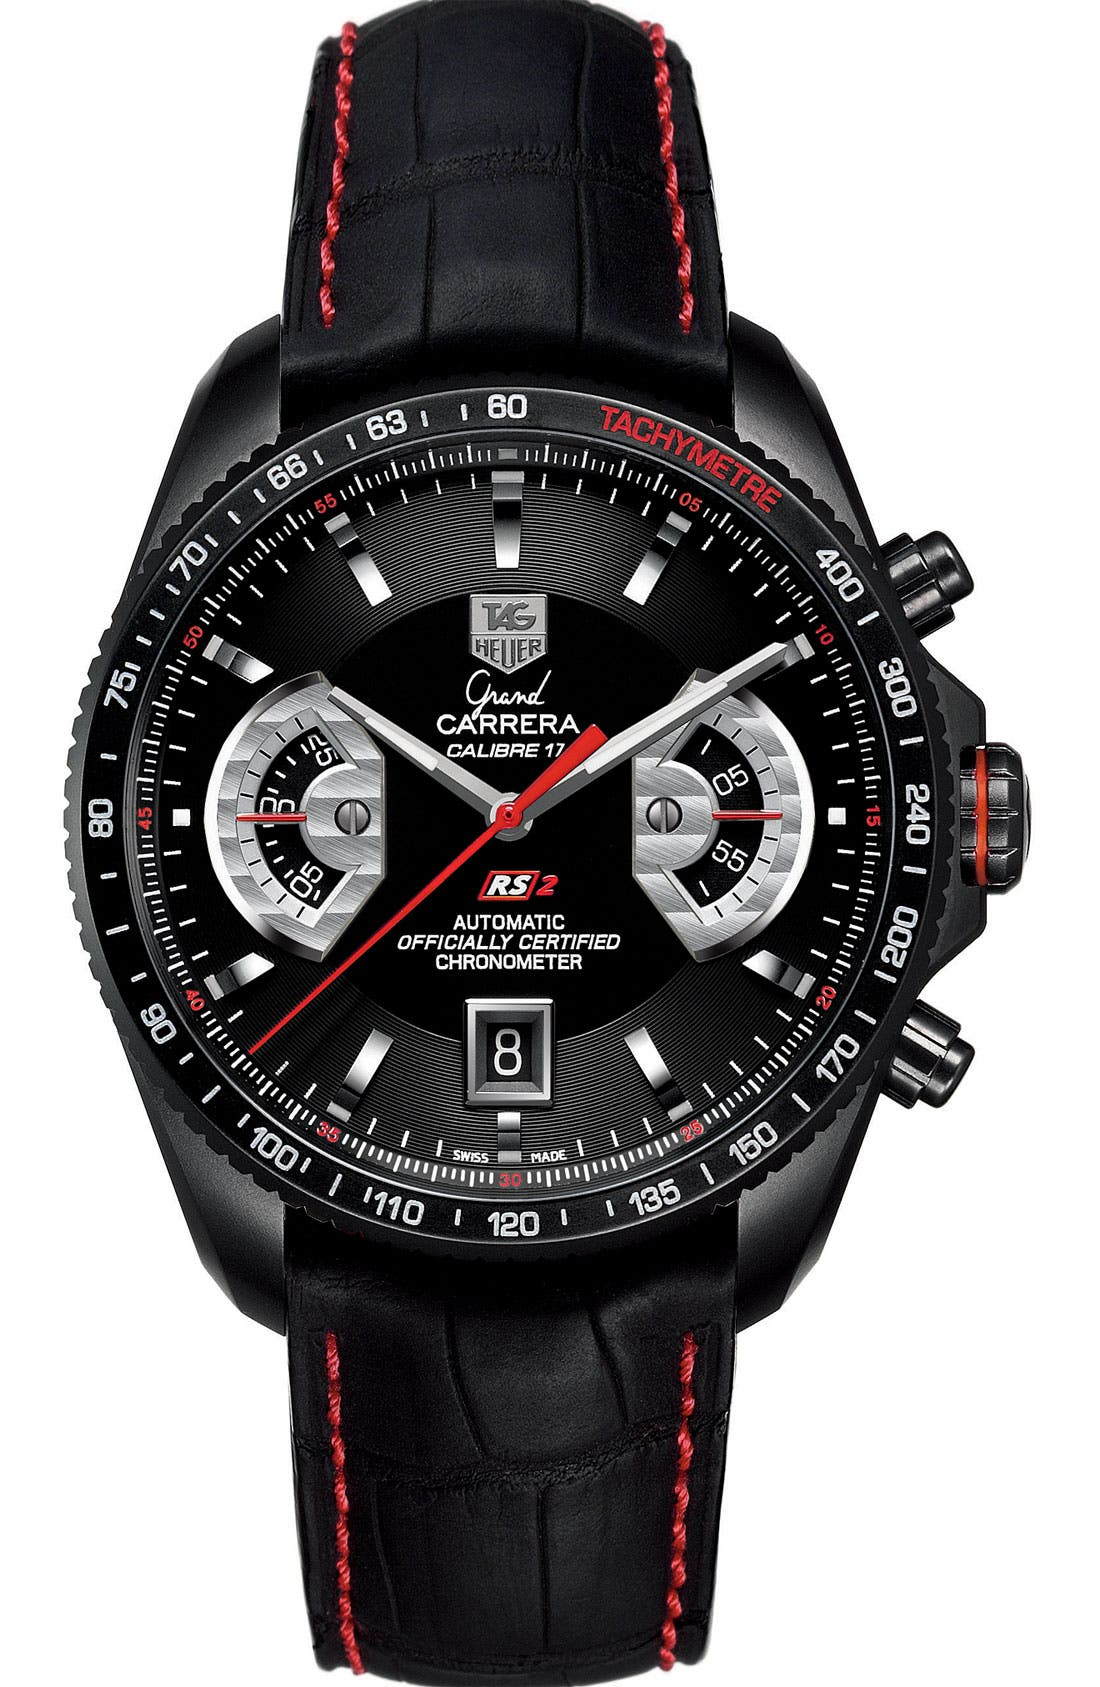 Alternate Image 1 Selected - TAG Heuer 'Grand Carrera' Chronograph Watch